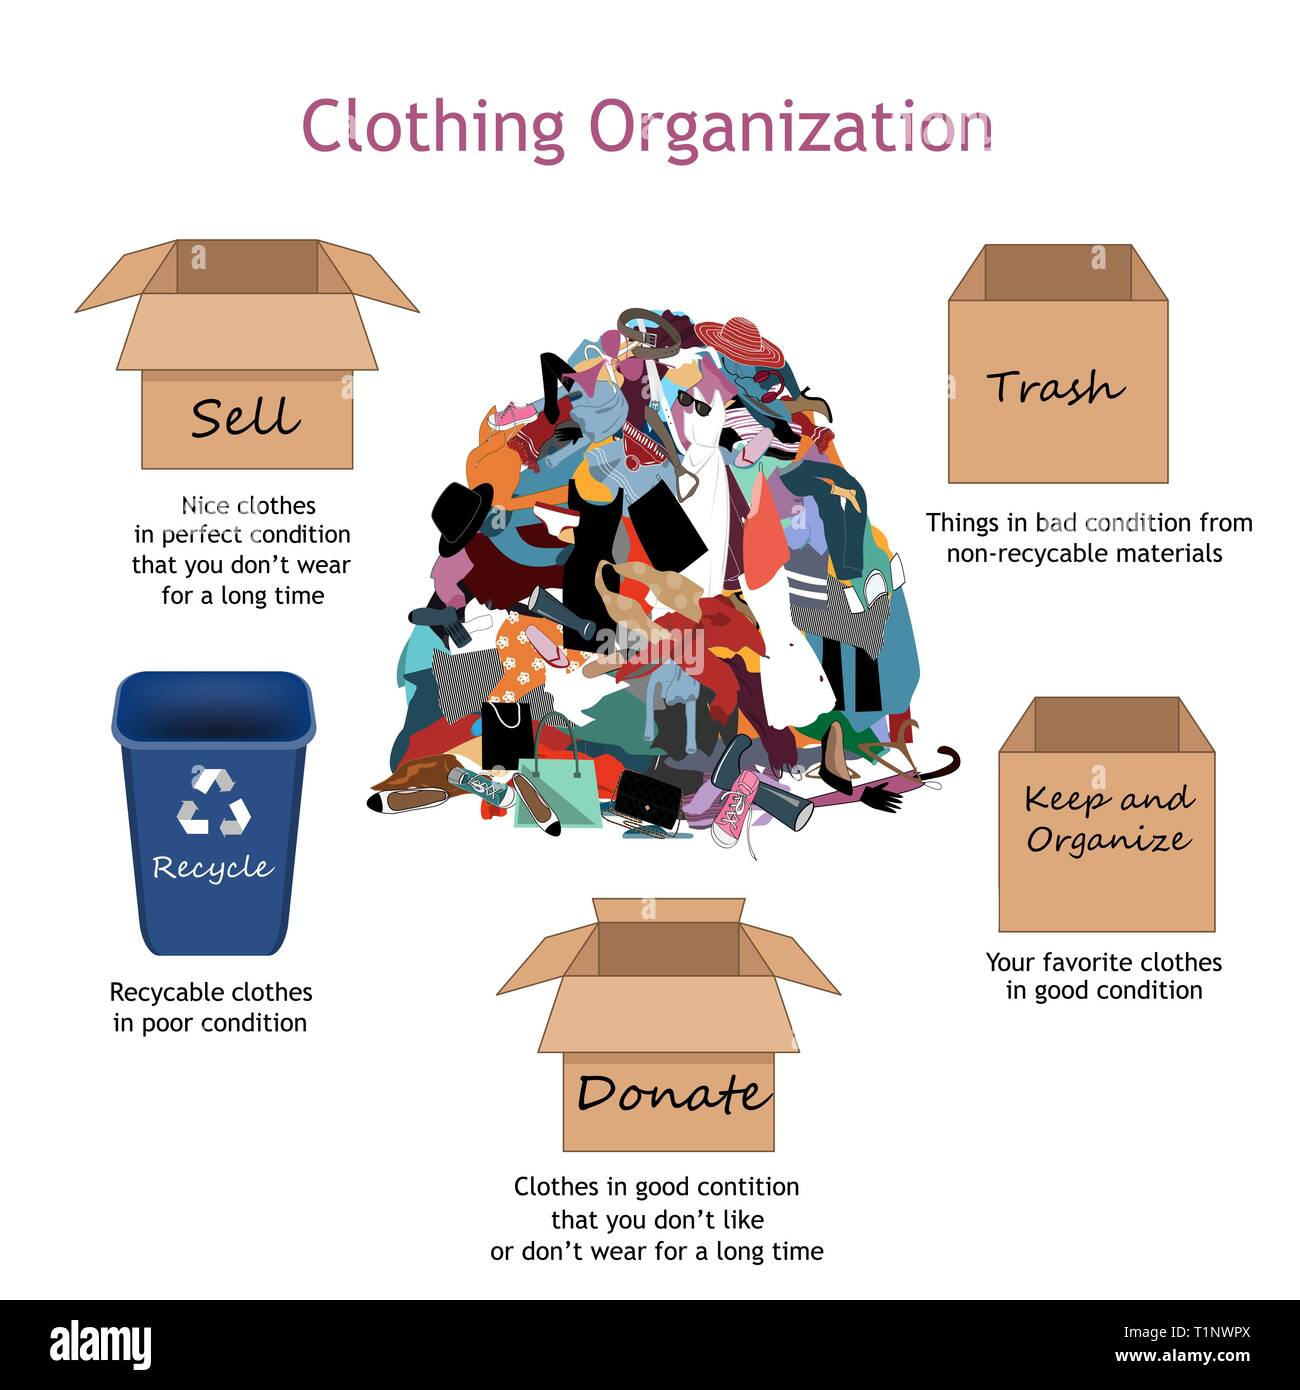 Clothing Organization Steps. Vector Illustration with a Big Messy Pile of Useless, Old, Cheap, and Oumoded Cothes and several boxes to organize it/ - Stock Image